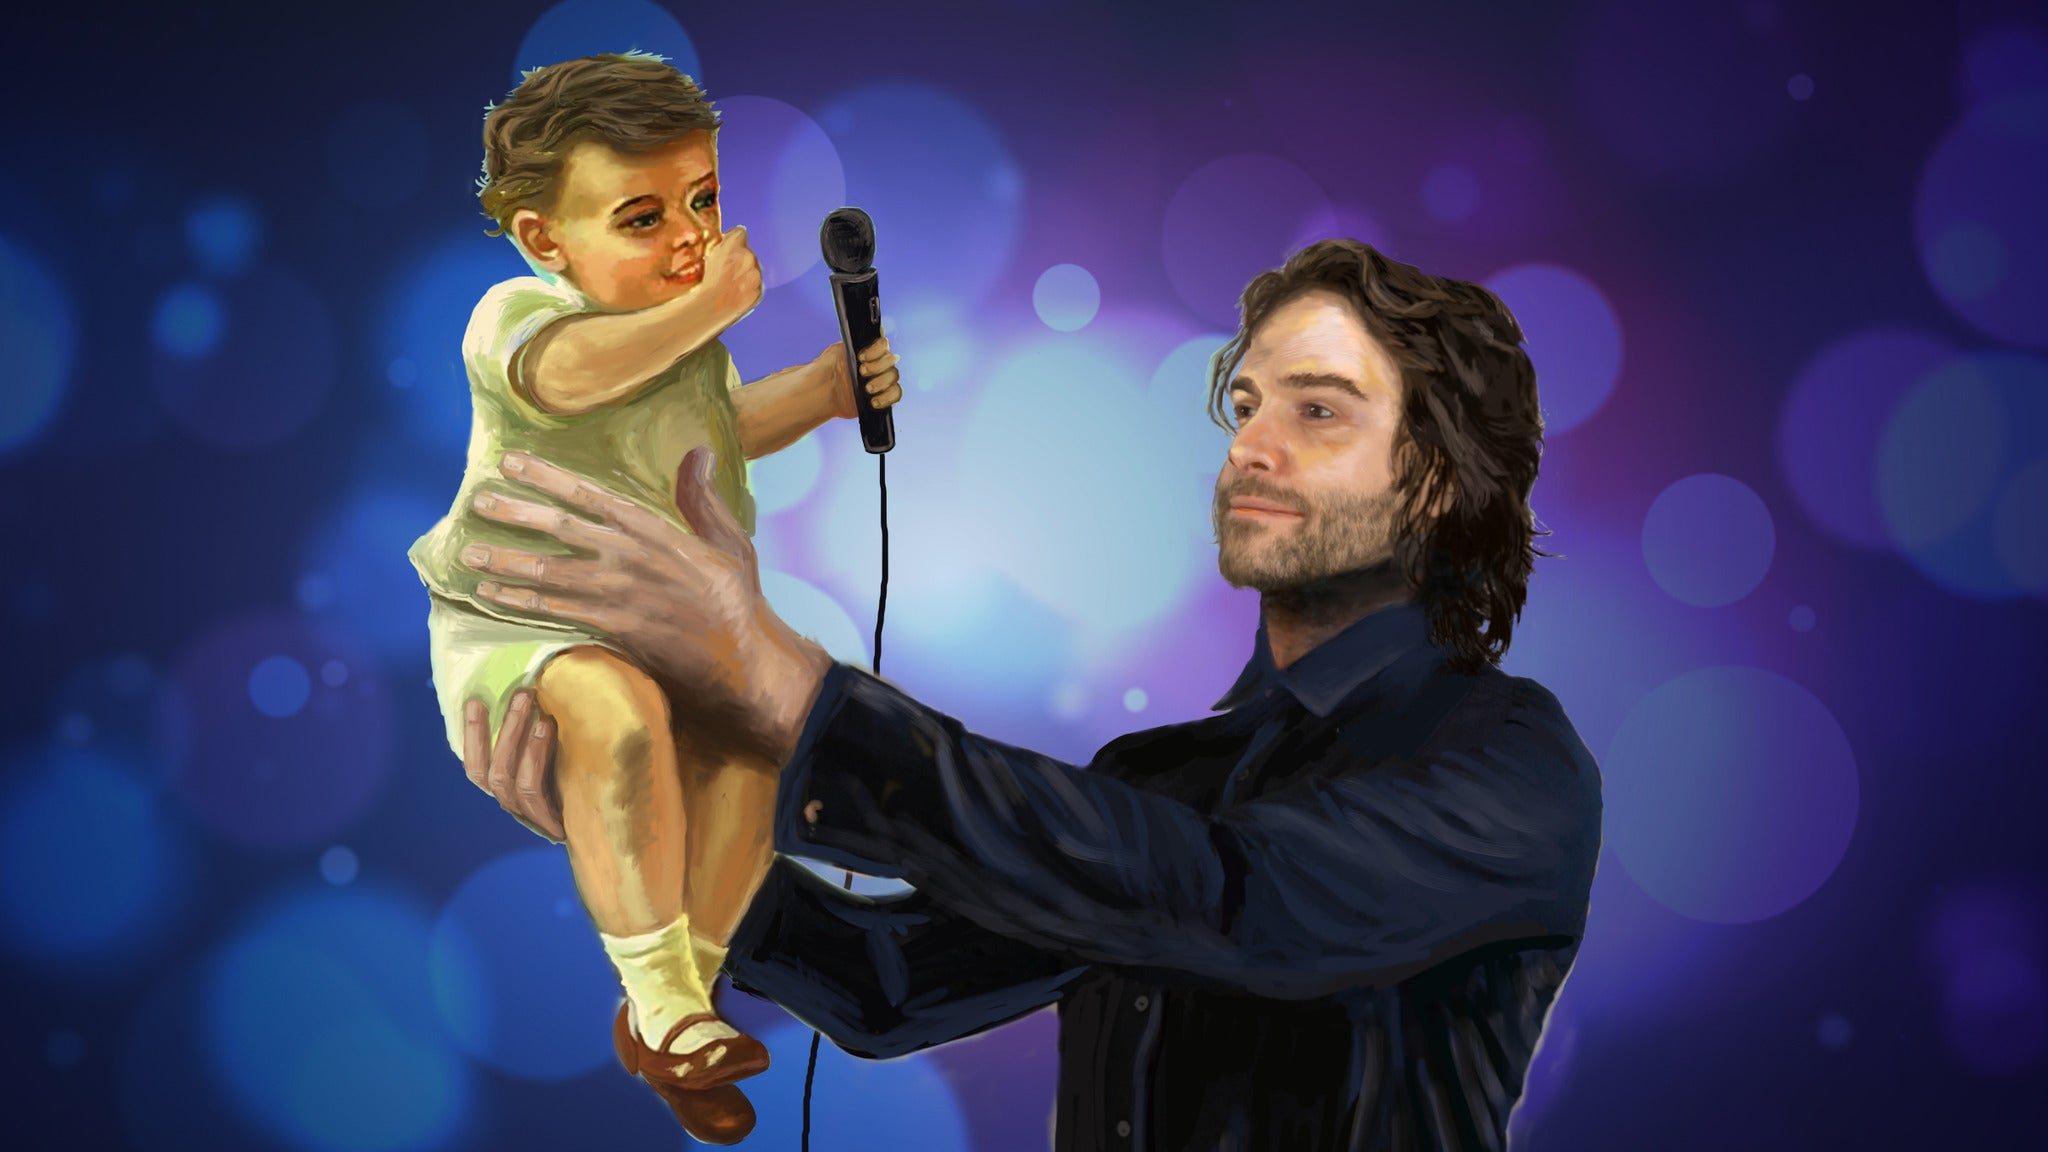 Chris D'elia at Bakersfield Fox Theater